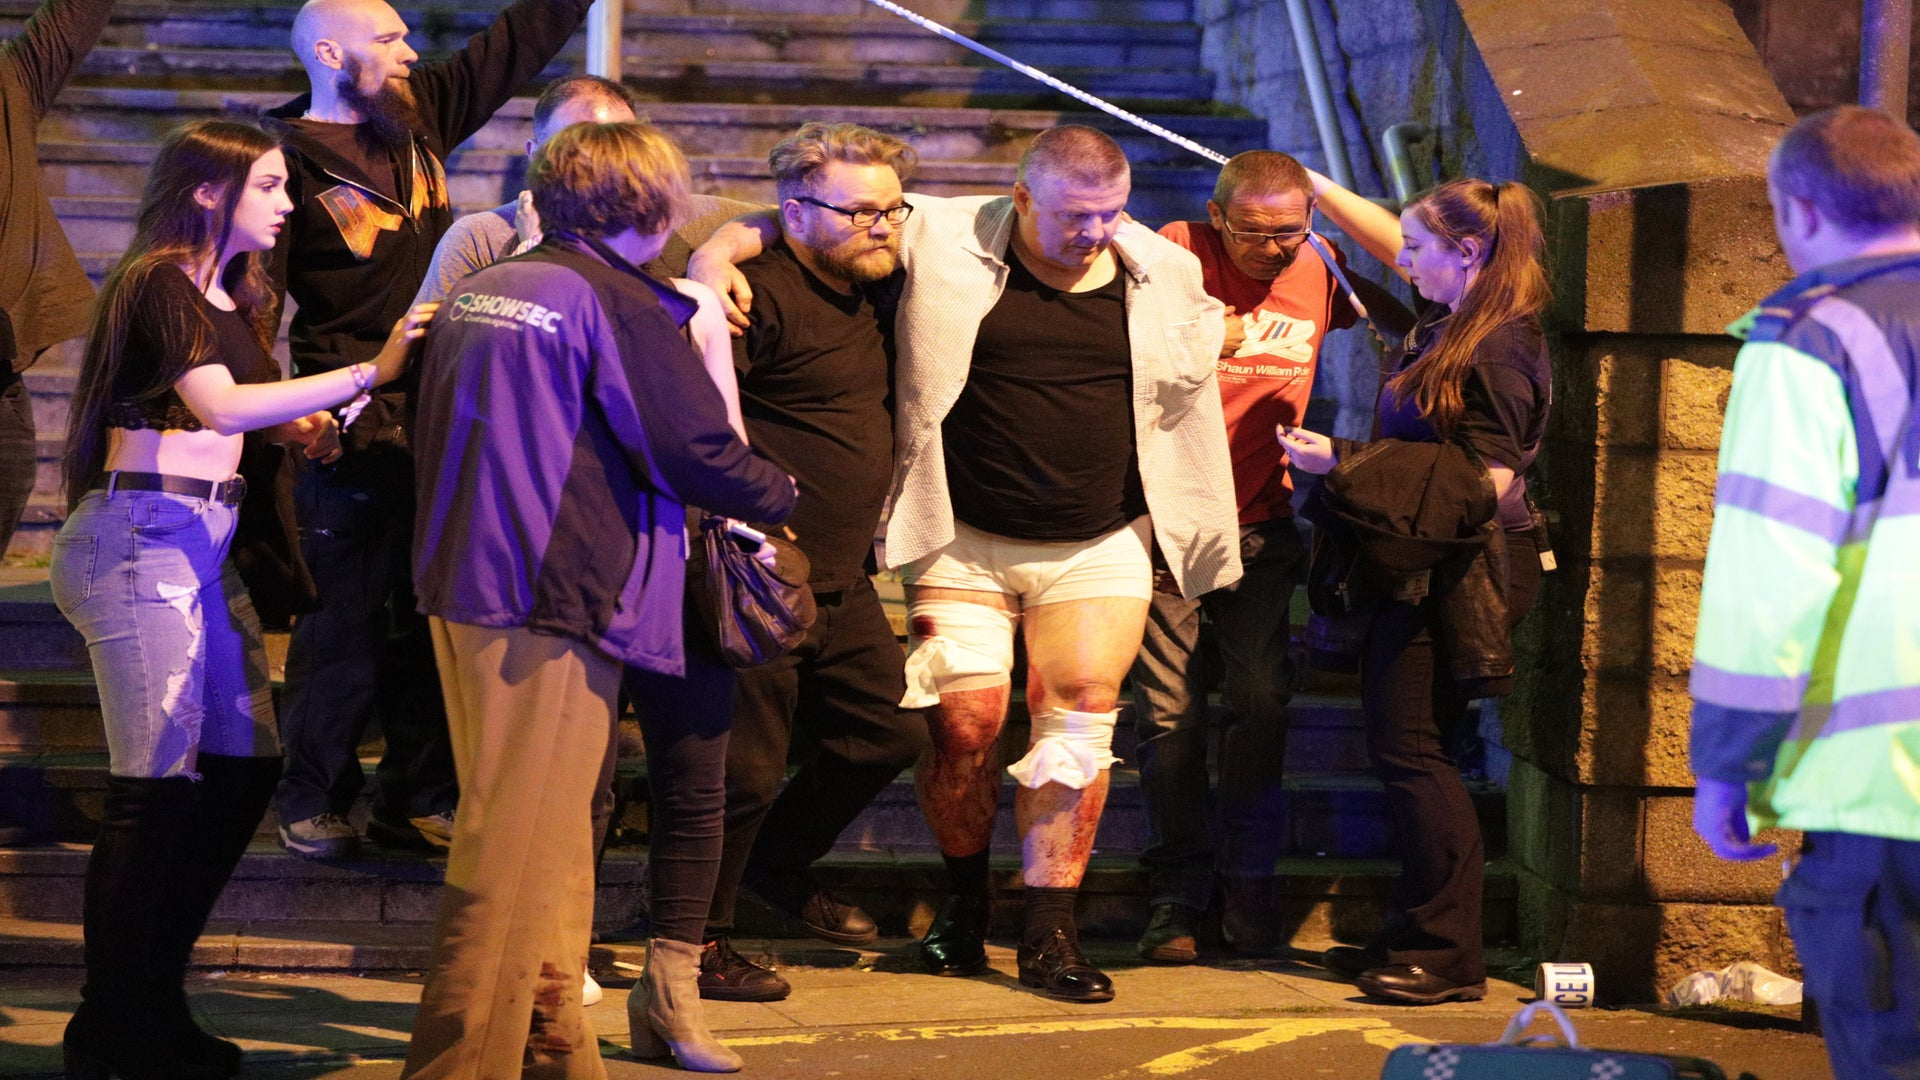 At Least 19 Dead After Explosion at Ariana Grande Concert in Manchester